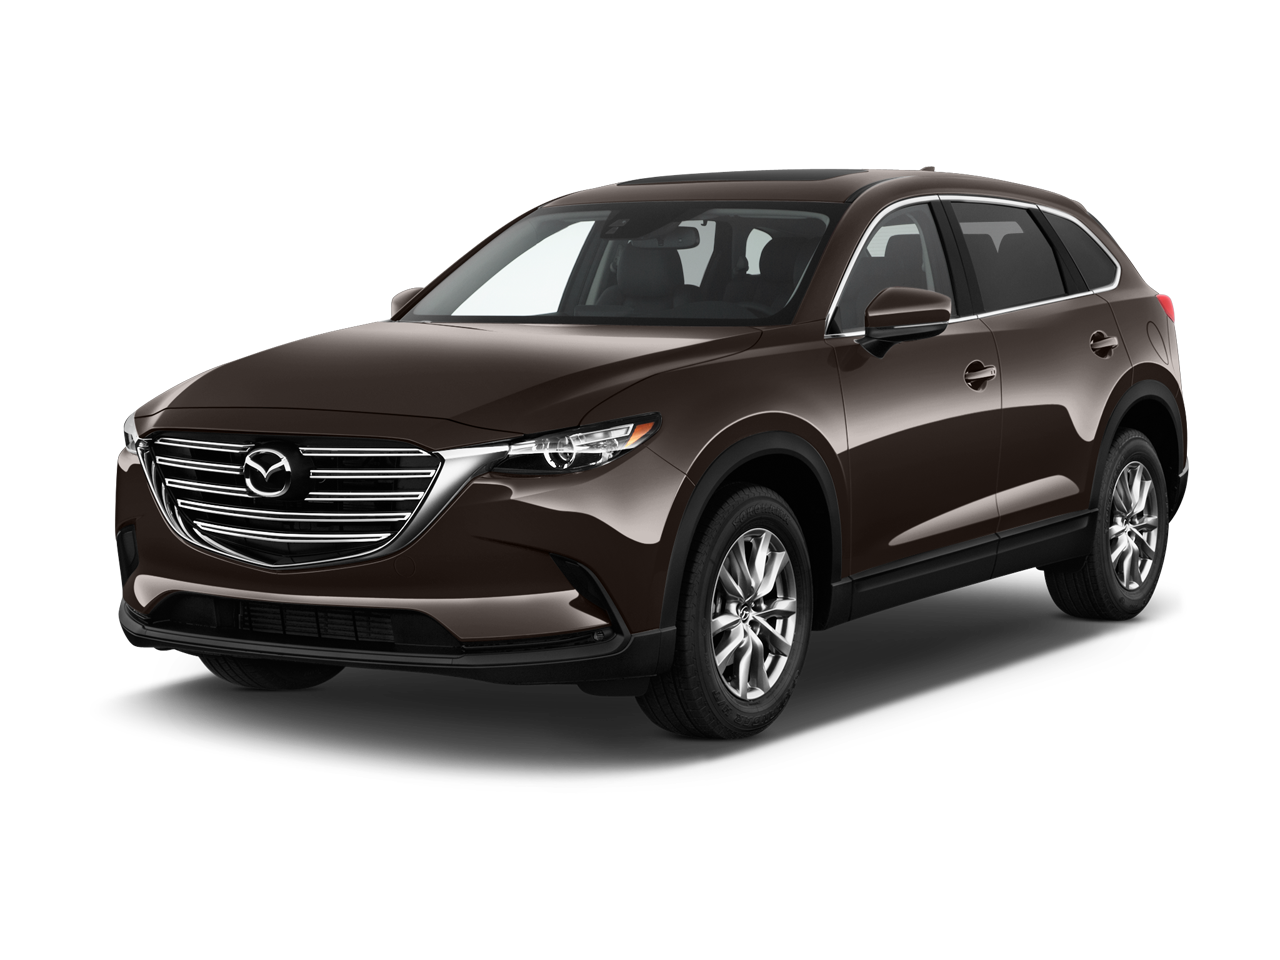 new 2018 mazda cx 9 grand touring spokane wa foothills mazda. Black Bedroom Furniture Sets. Home Design Ideas